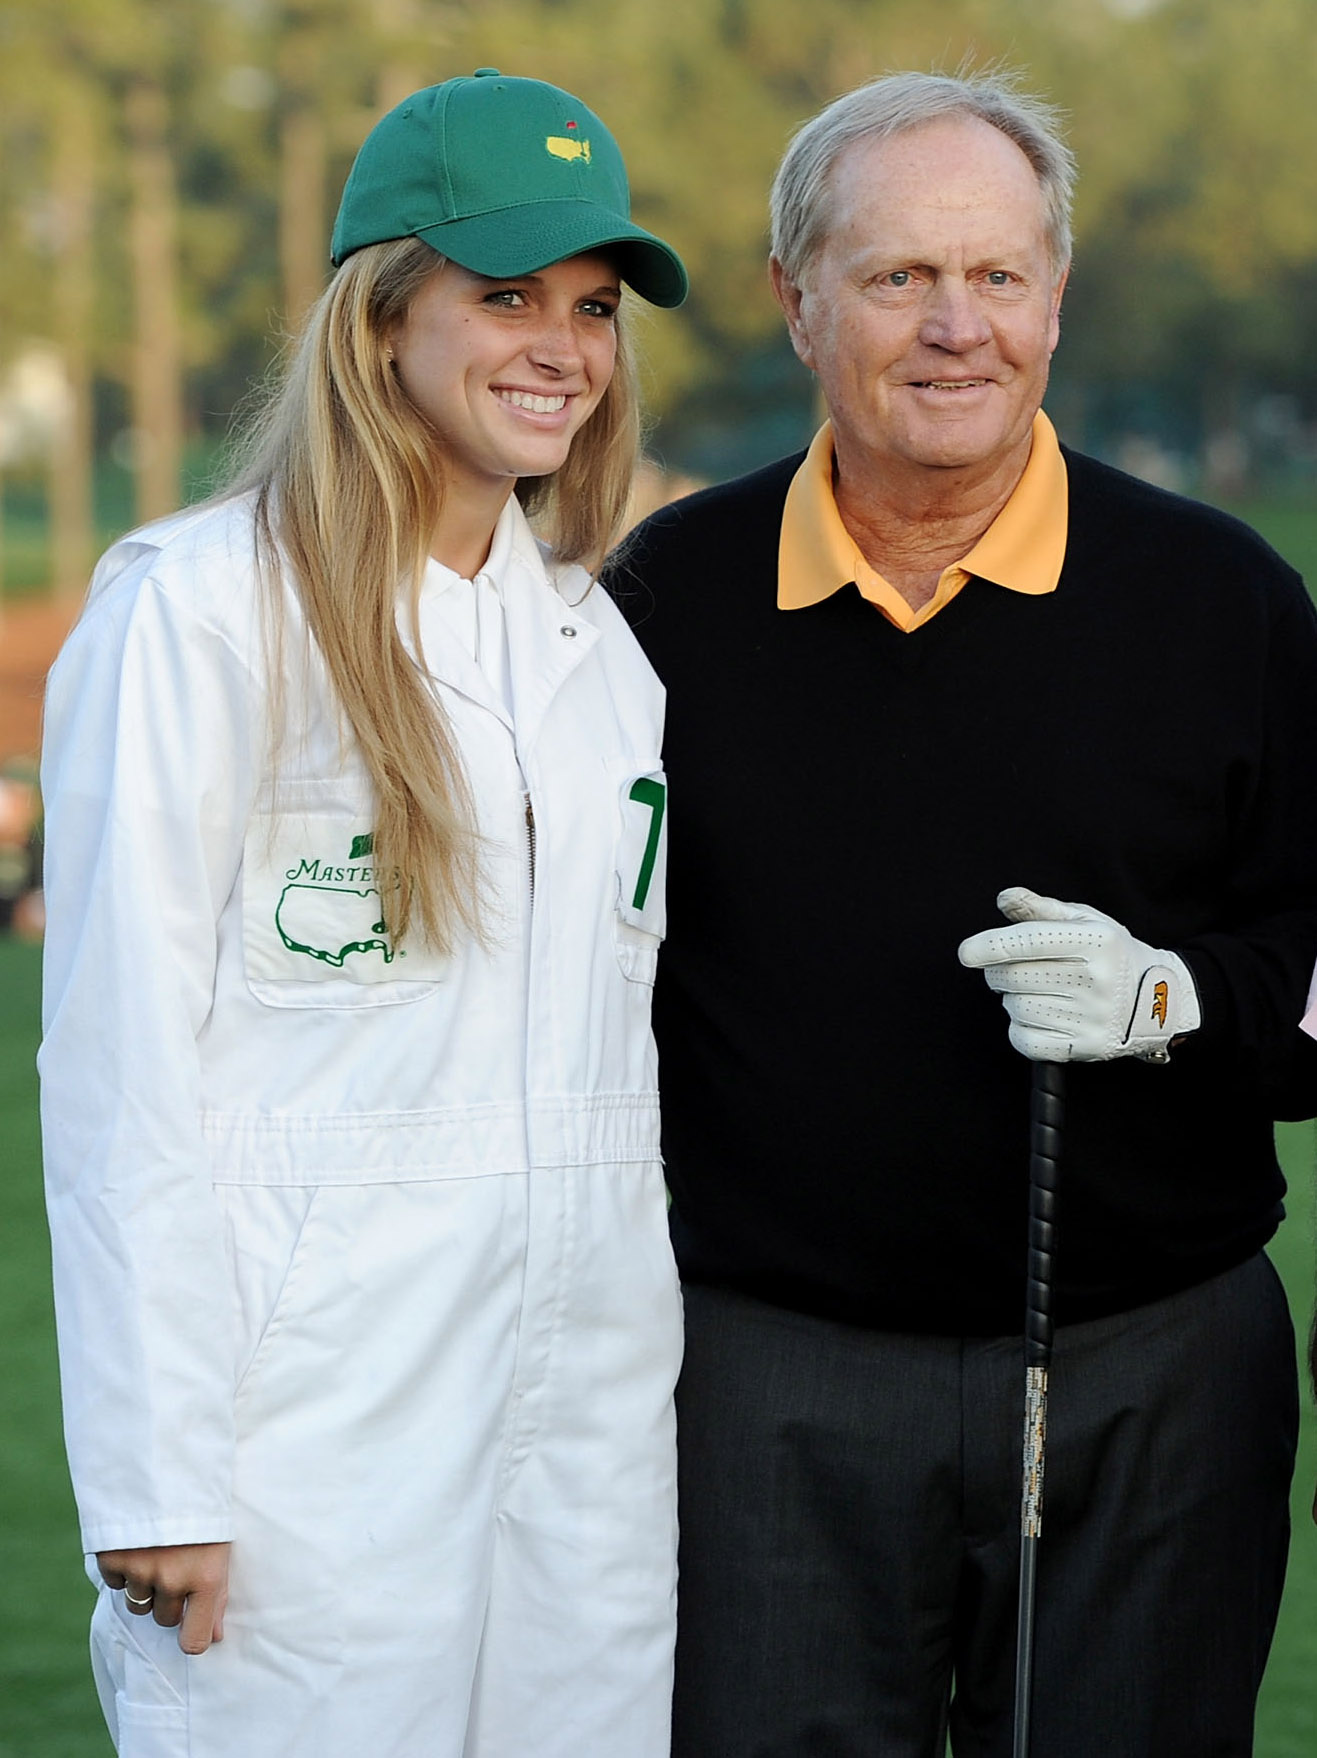 Jack Nicklaus and his granddaughter Christie, before his opening tee shot at the Masters.